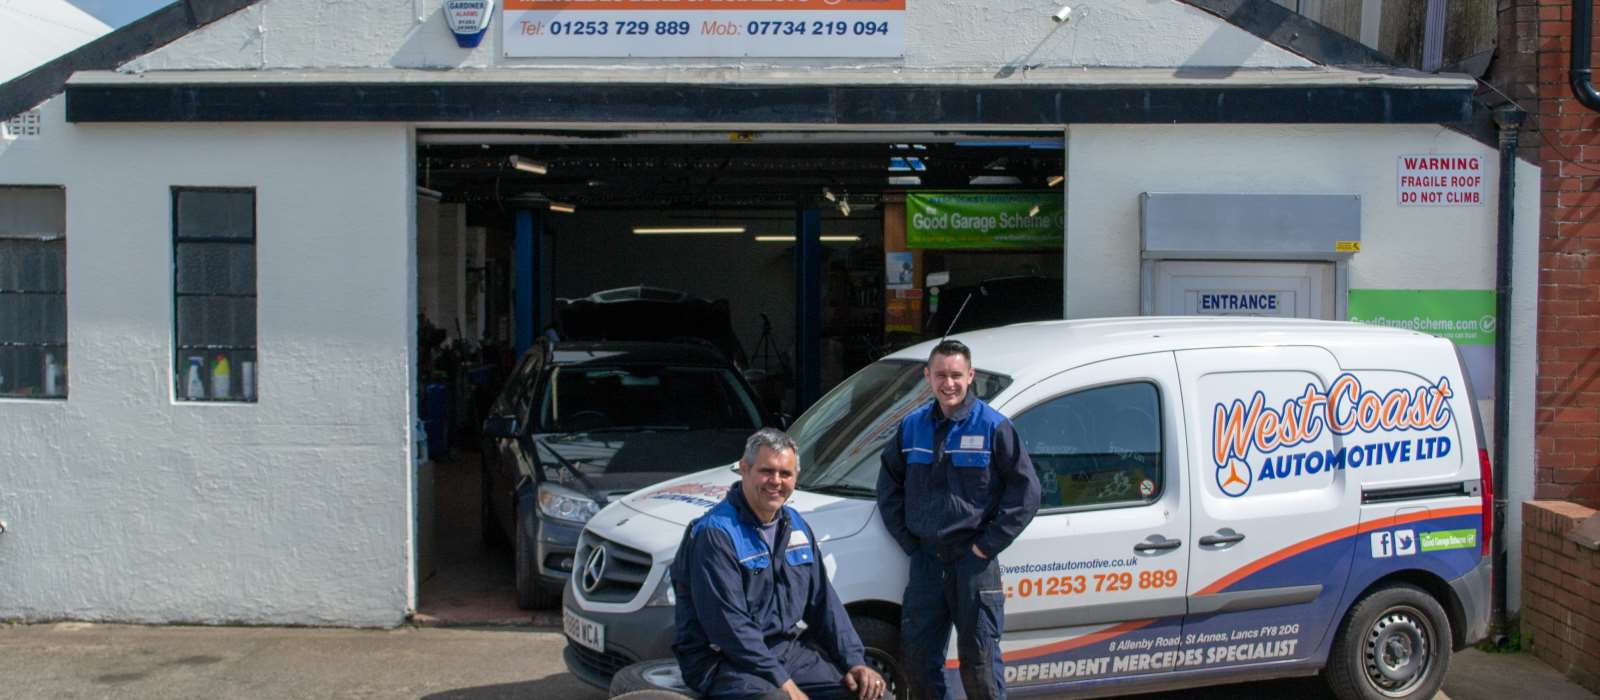 West Coast Automotive Ltd